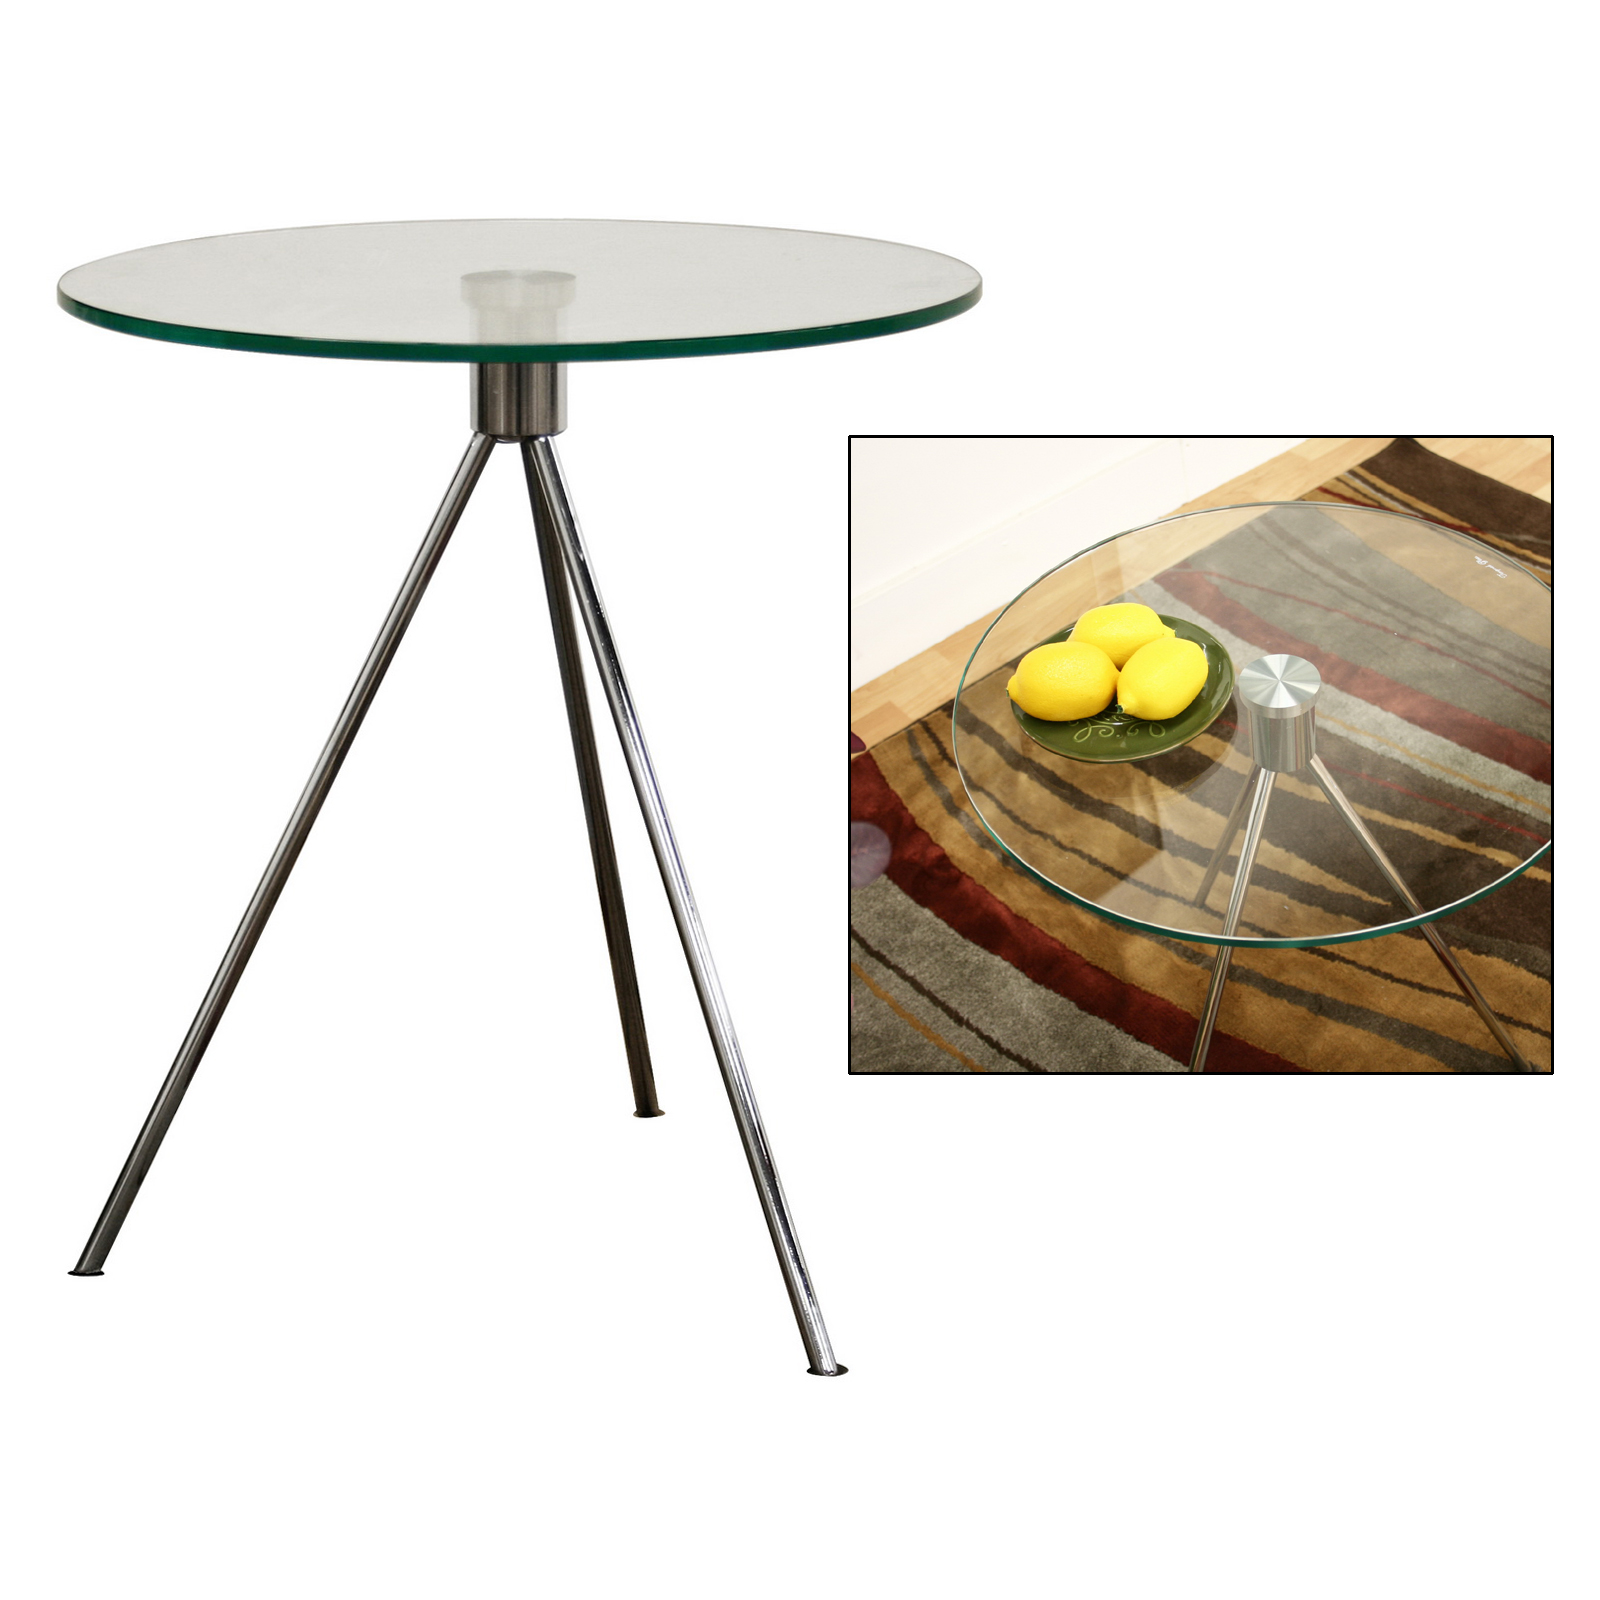 Captivating Triplet Round Glass Top End Table With Tripod Base   By Wholesale Interiors  Image